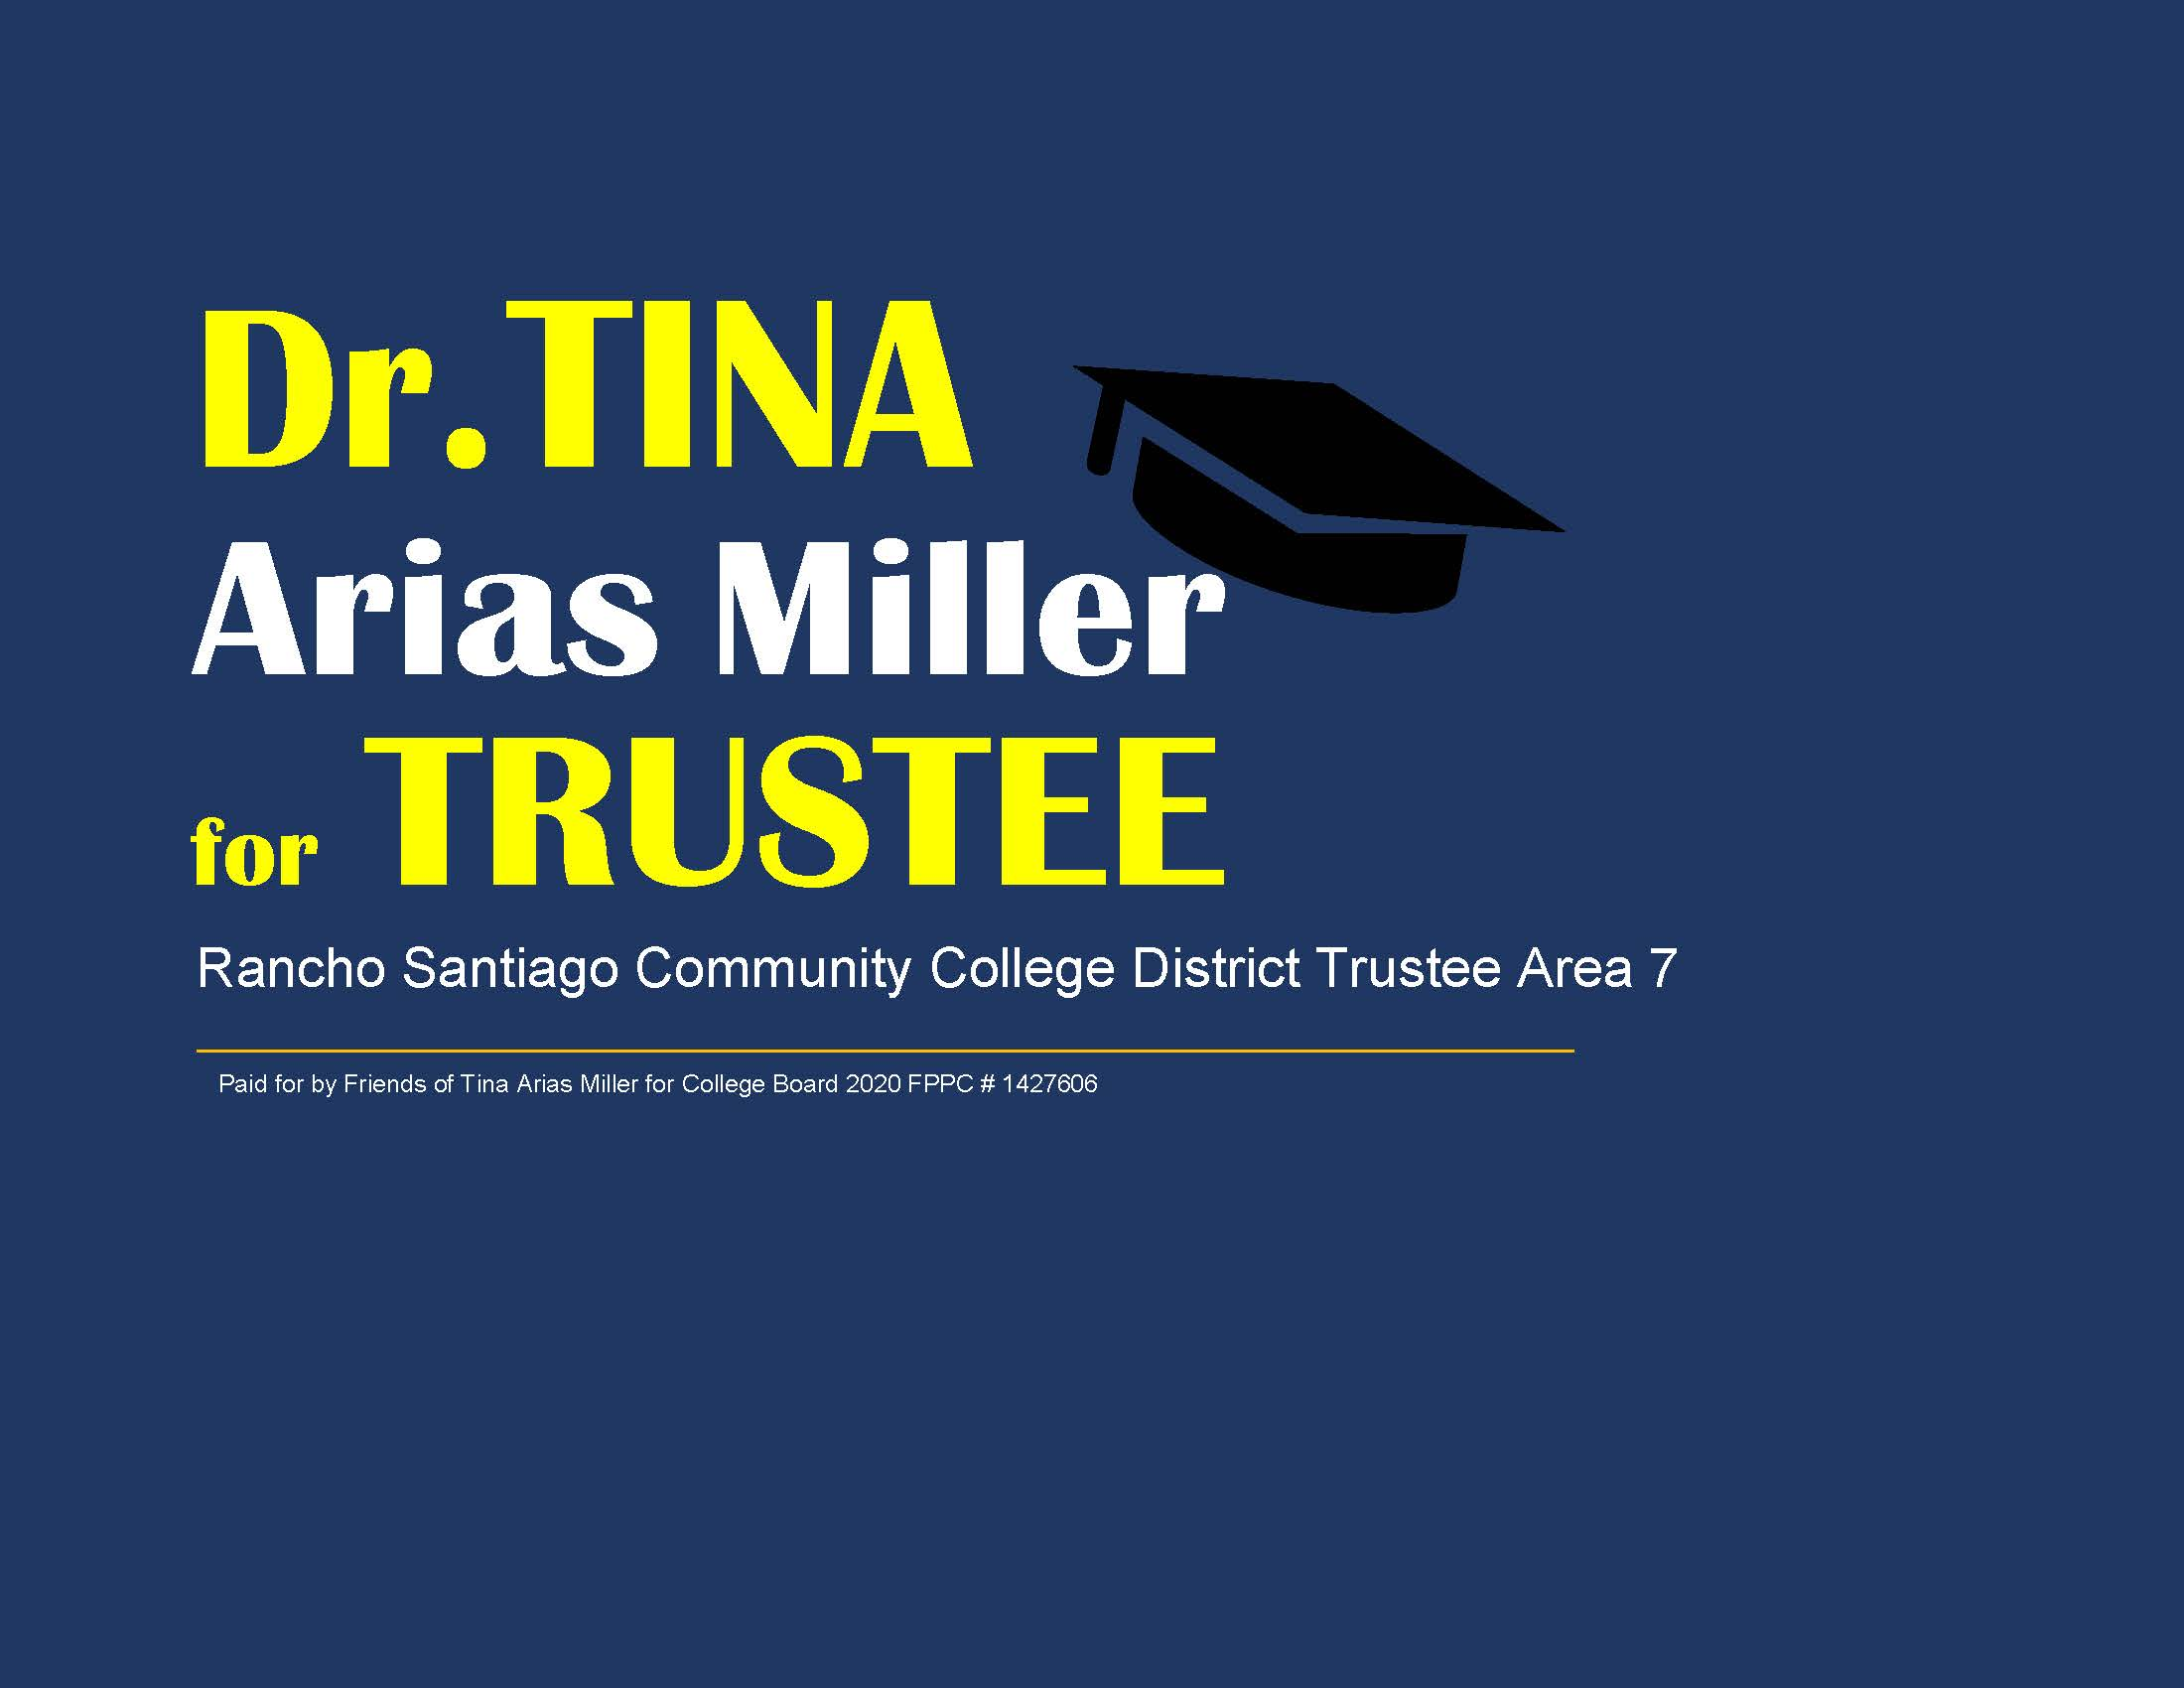 Friends for Tina Arias Miller for College Board 2020